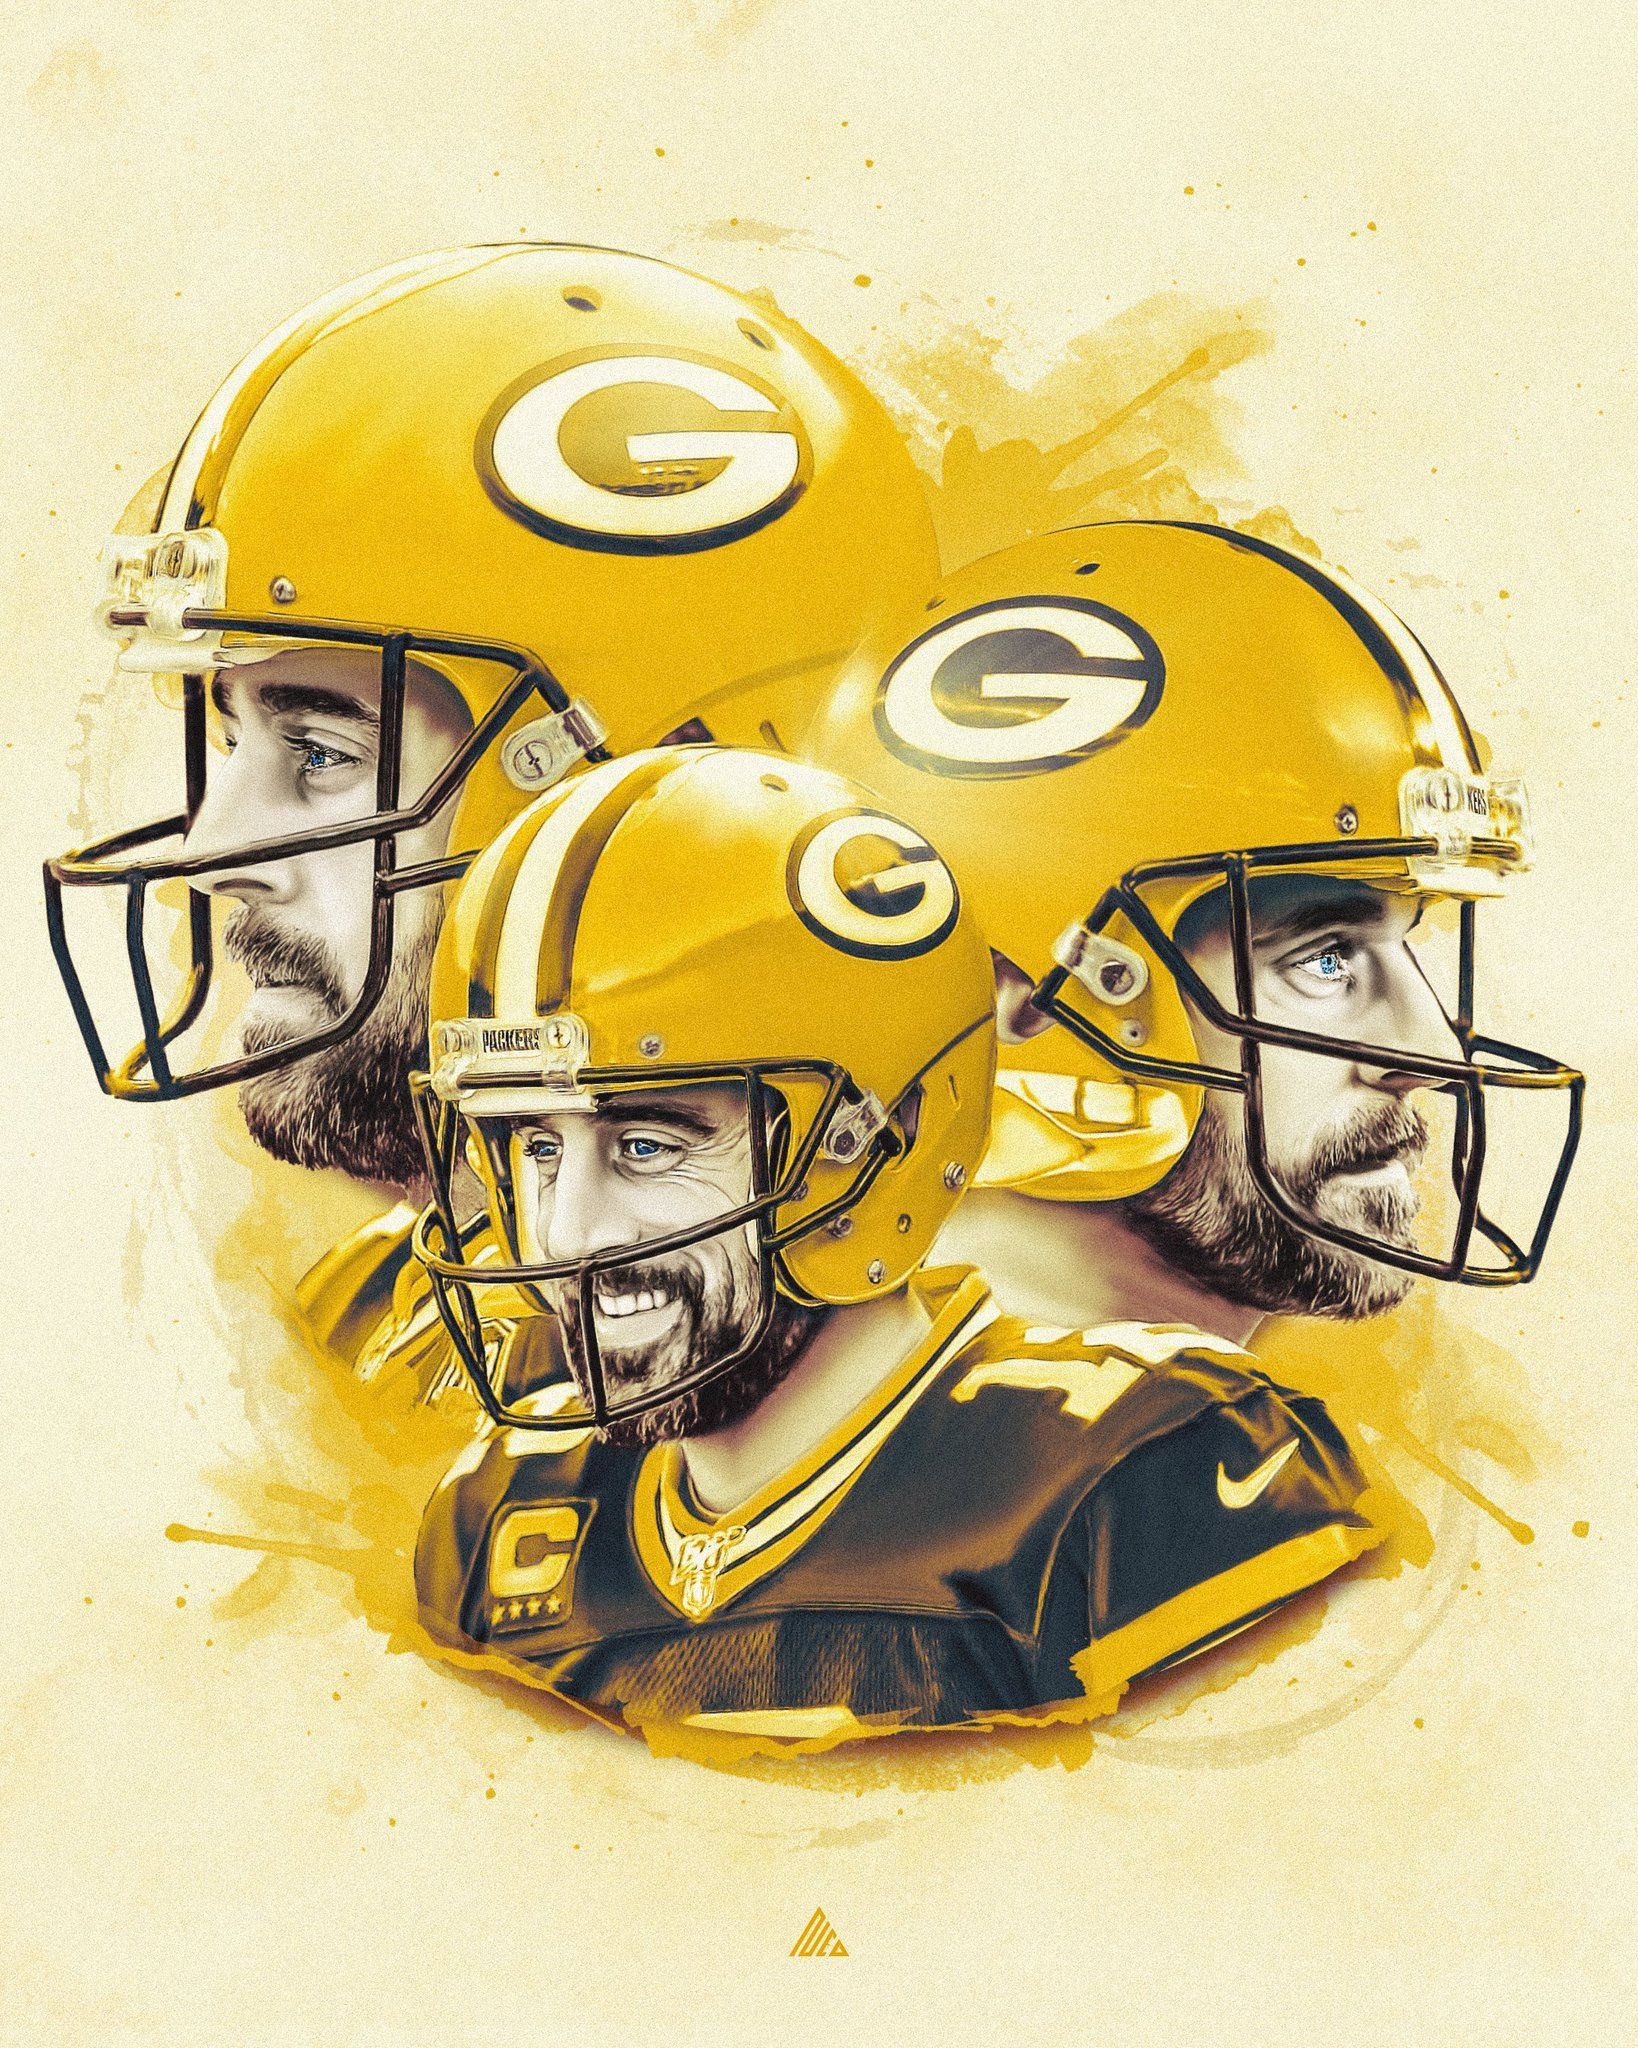 Twitter In 2020 Football Helmets Favorite Team Green Bay Packers